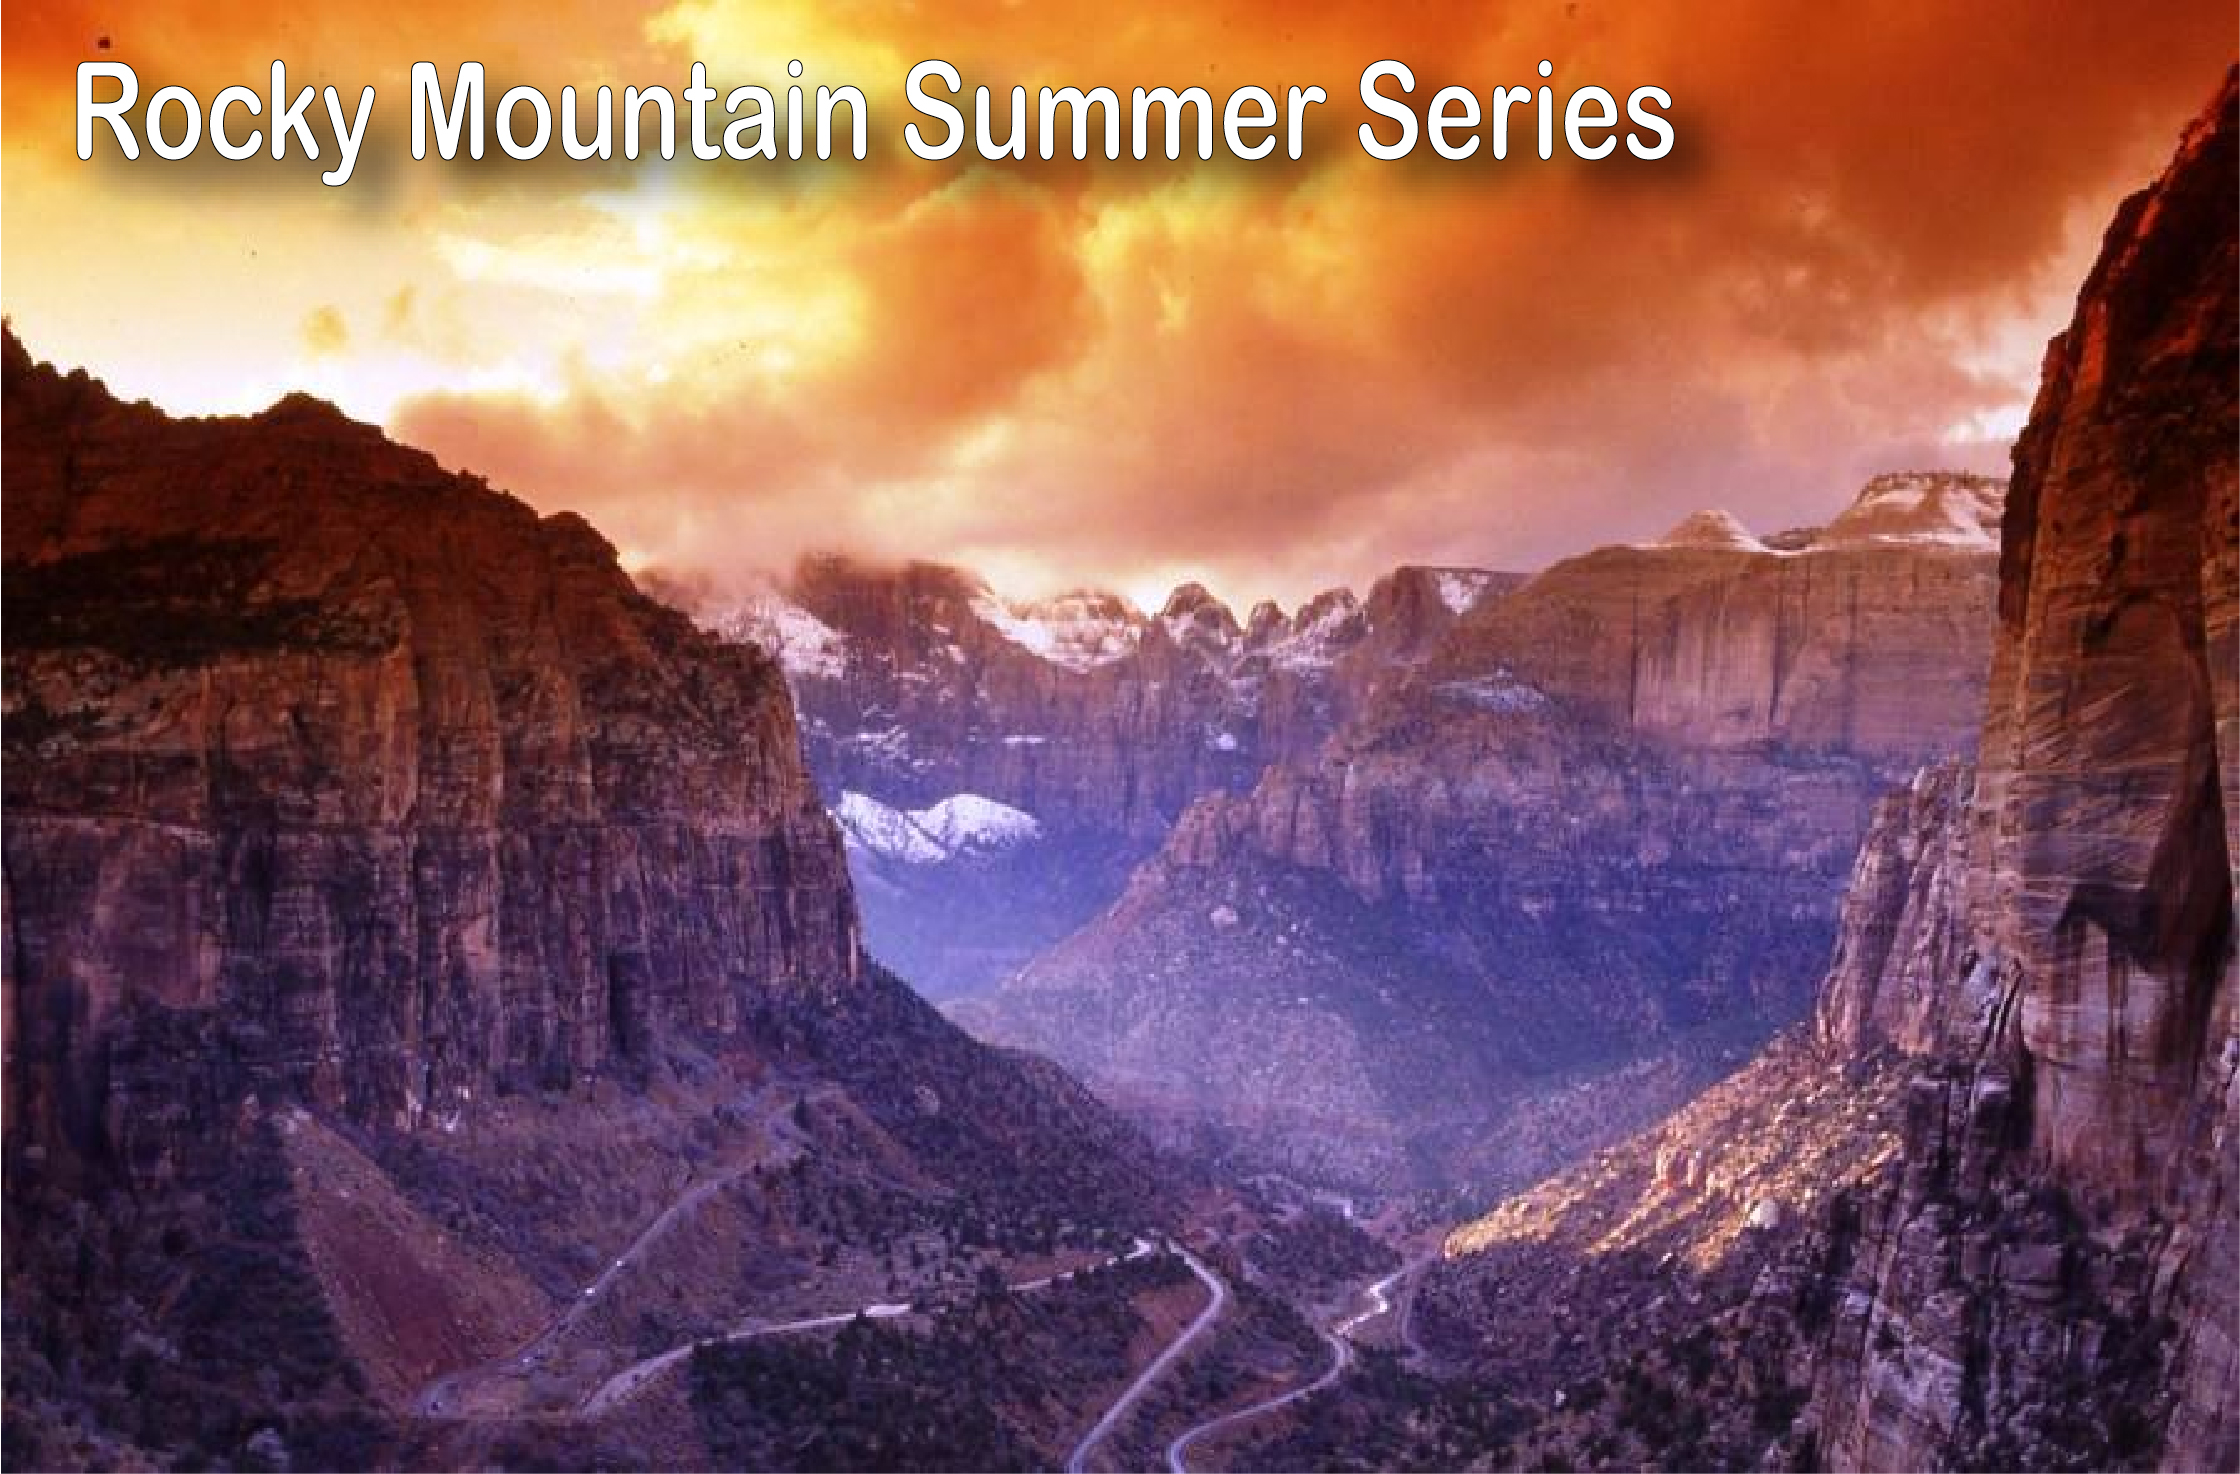 Rocky Mountain Summer Series